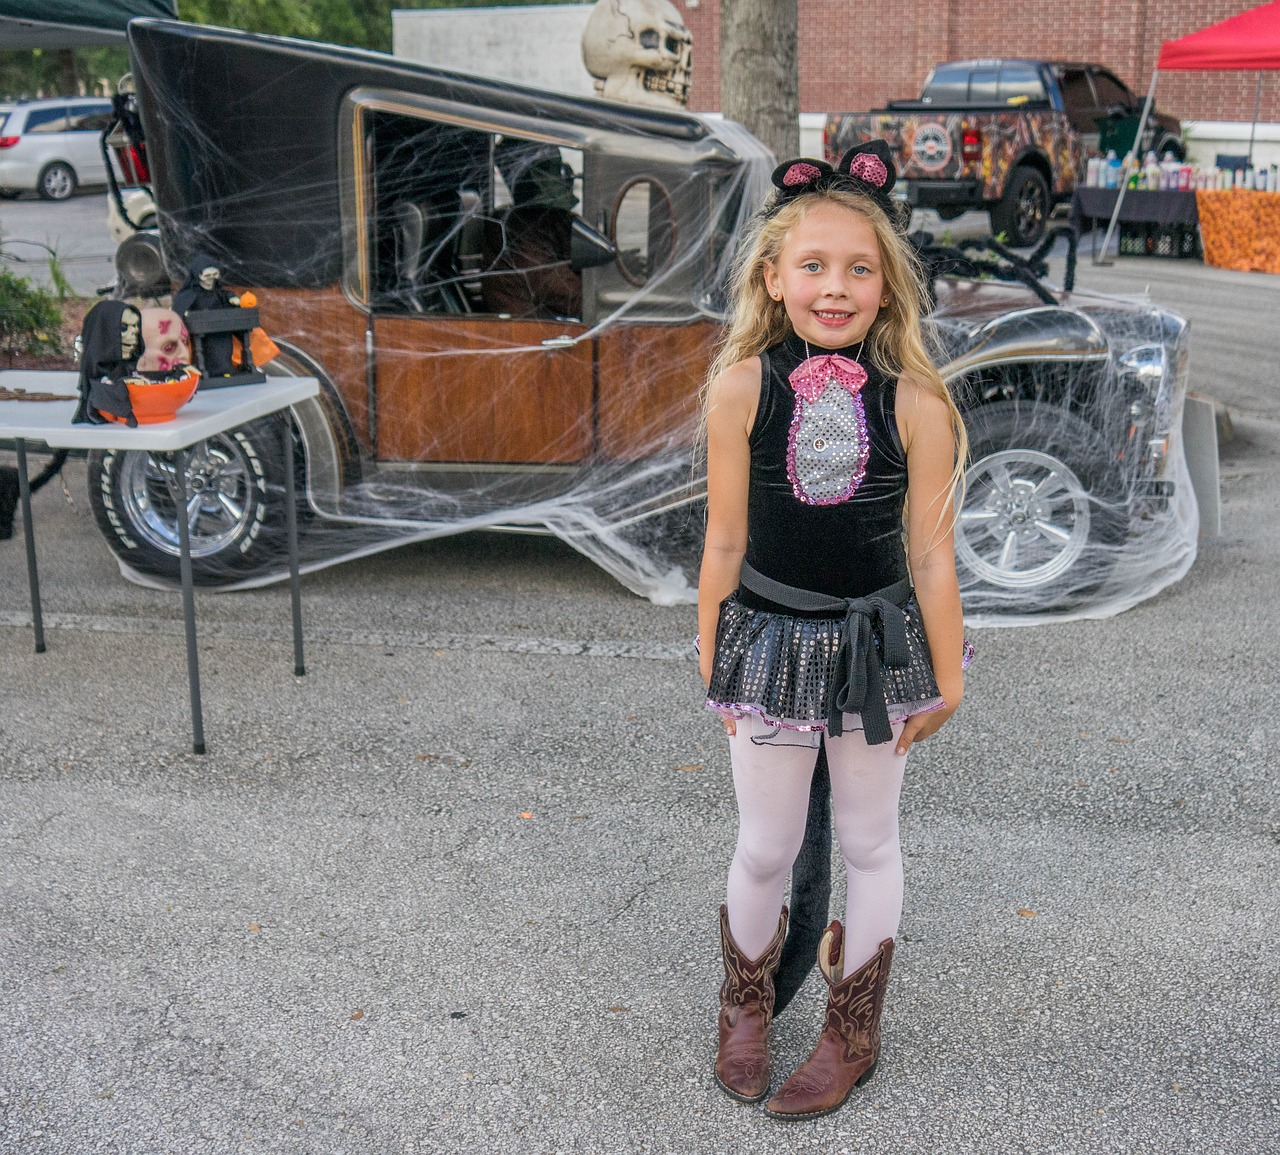 Family Friendly Halloween Activities in the DFW